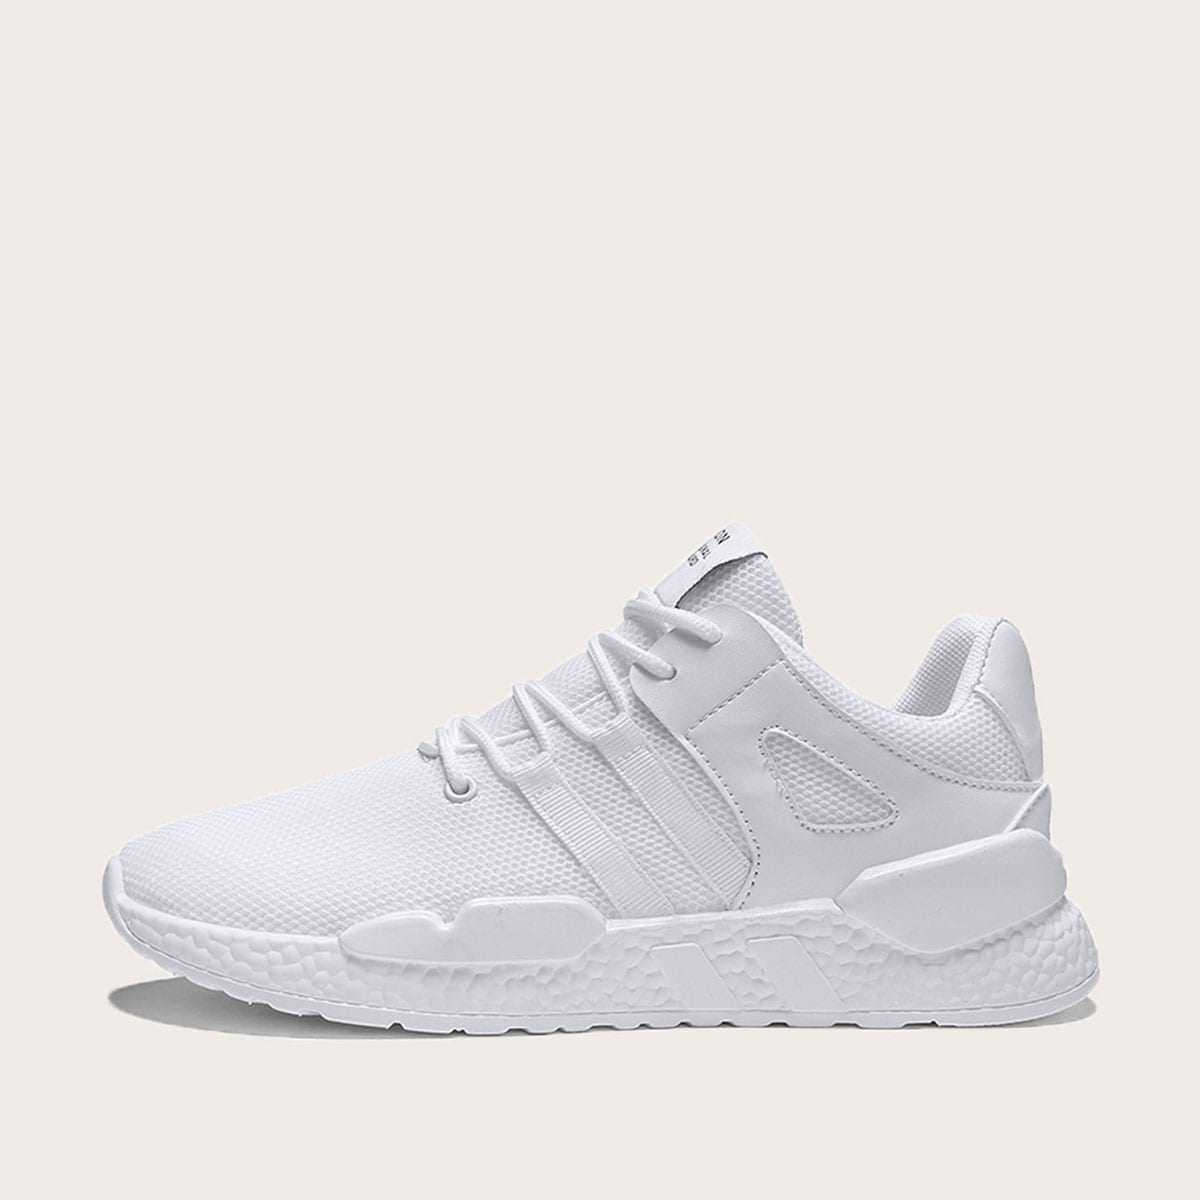 Guys Lace-up Front Mesh Trainers in White by ROMWE on GOOFASH